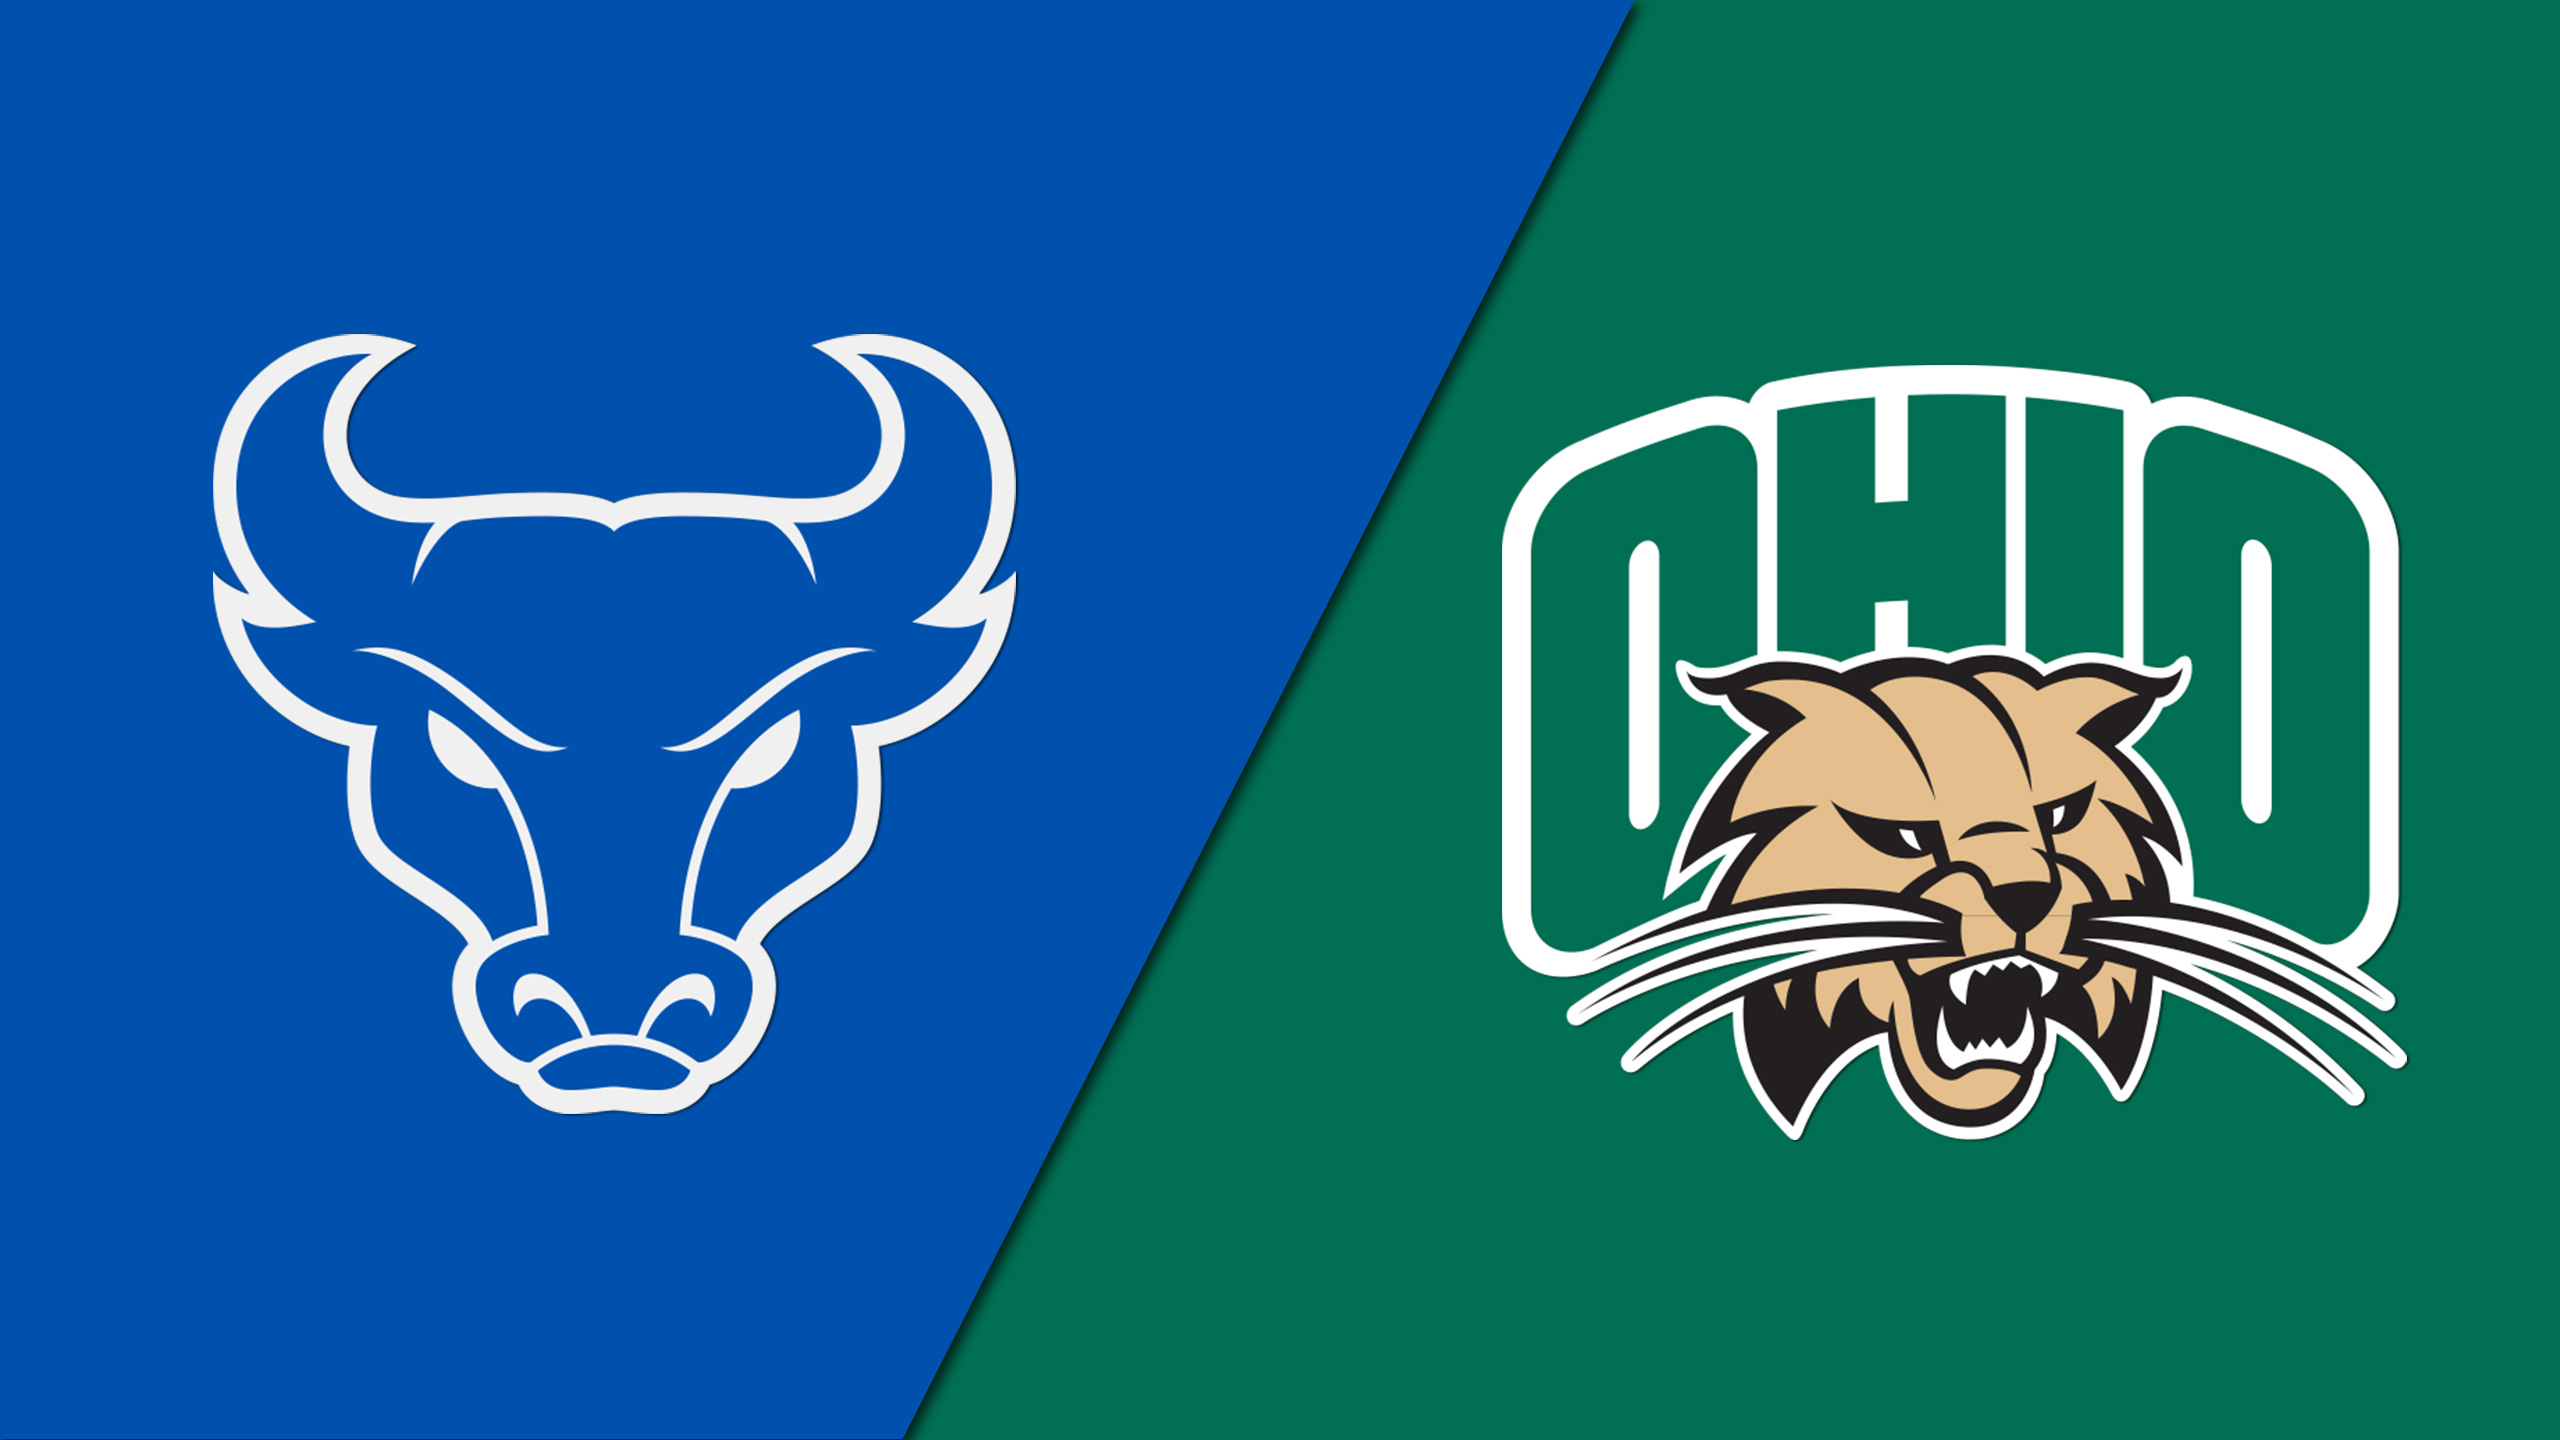 Buffalo vs. Ohio (Football)